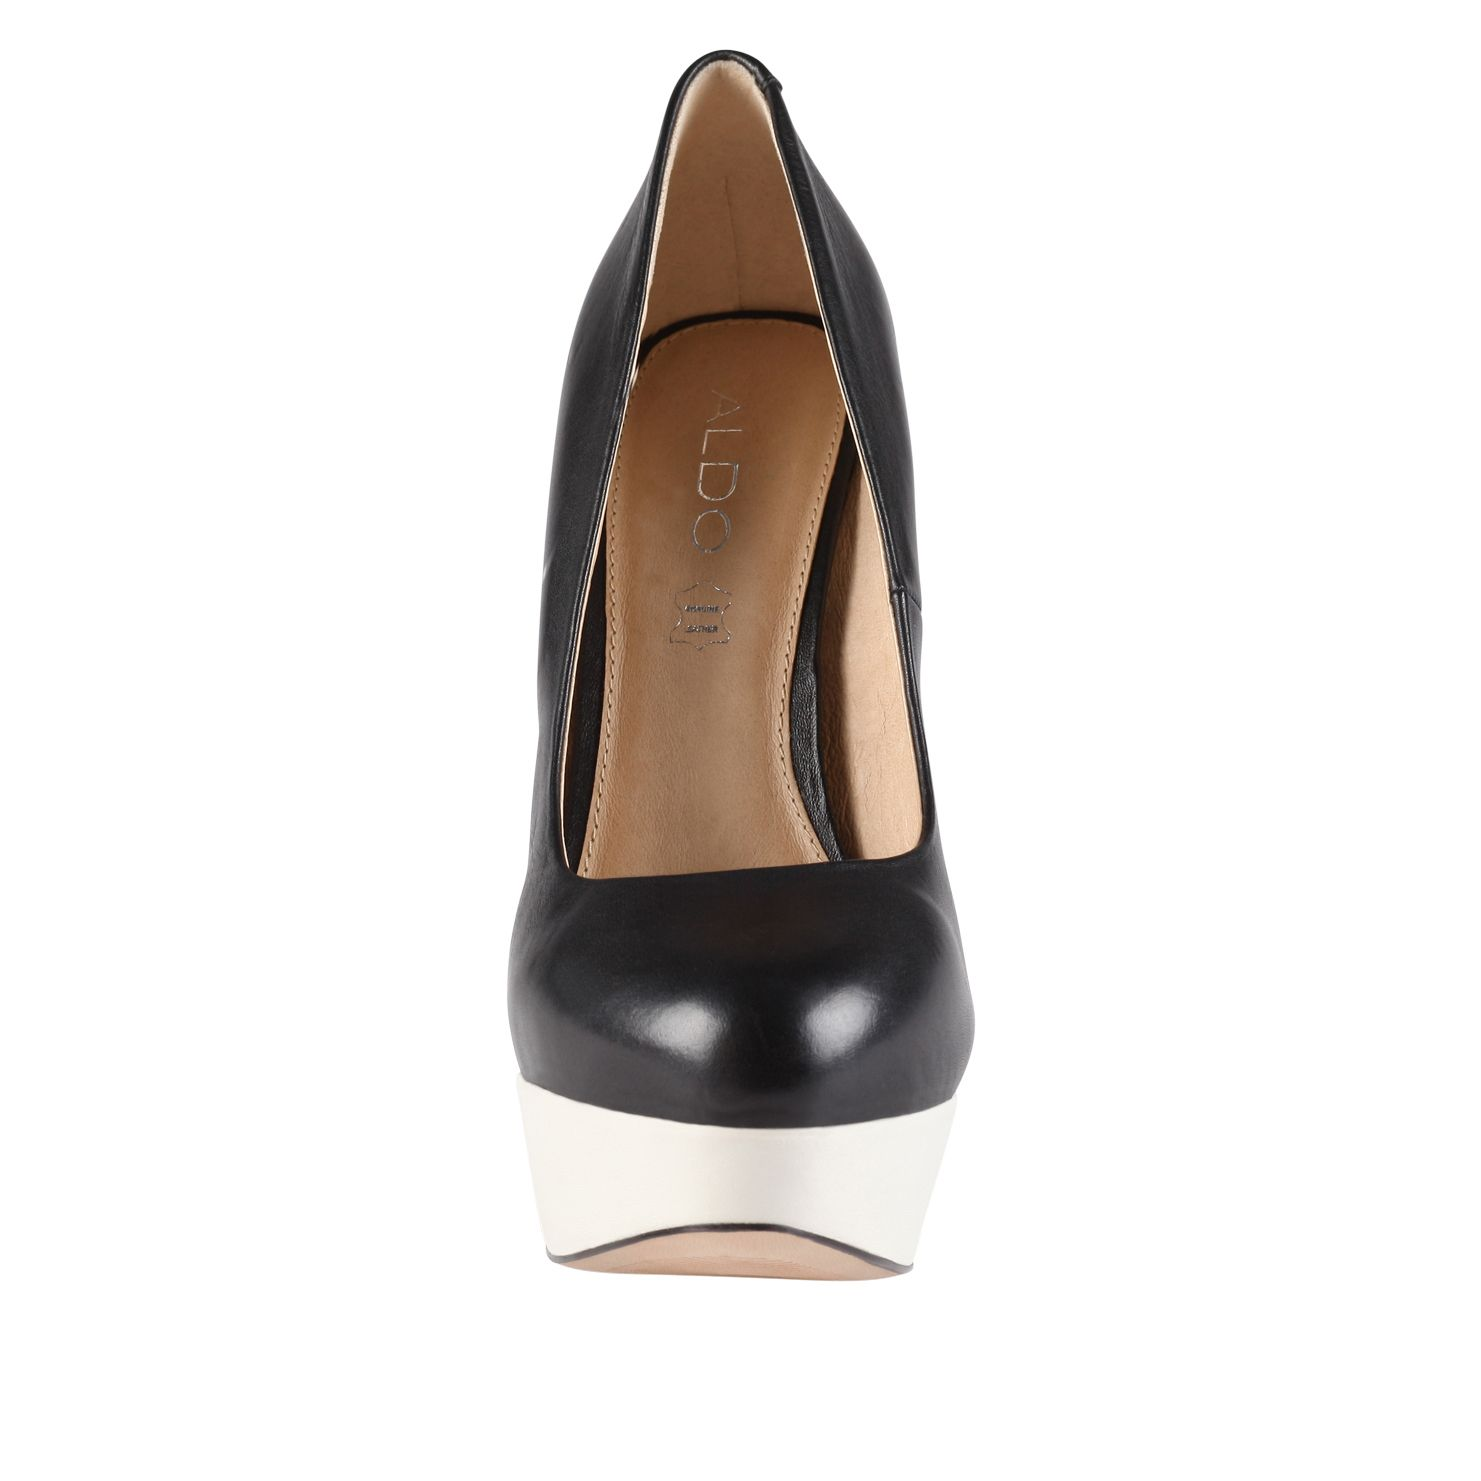 Haronik Platform Court Shoes